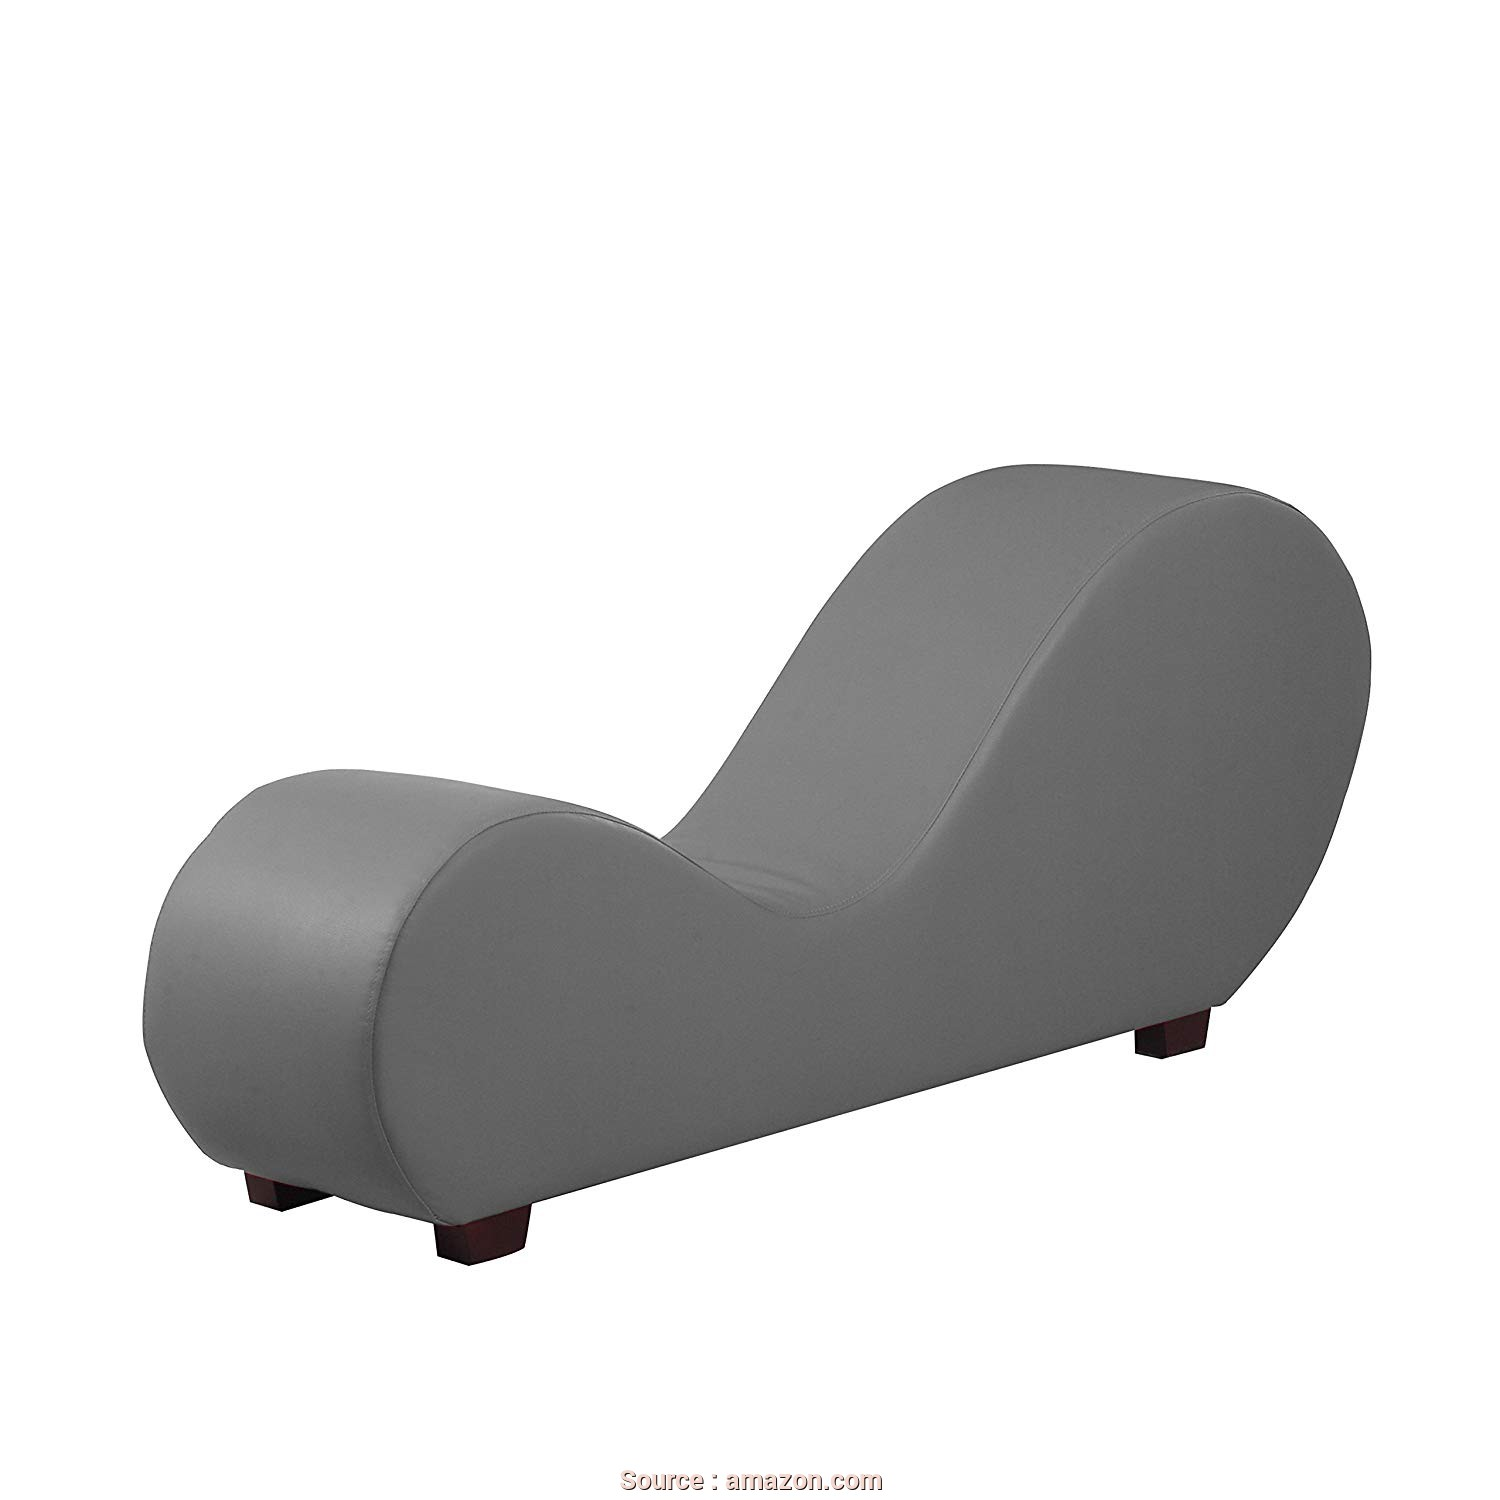 Divano Chaise Longue Relax, Esotico Amazon.Com: Divano Roma Furniture Modern Bonded Leather Chaise Lounge Yoga Chair, Stretching, Relaxation (Grey): Kitchen & Dining